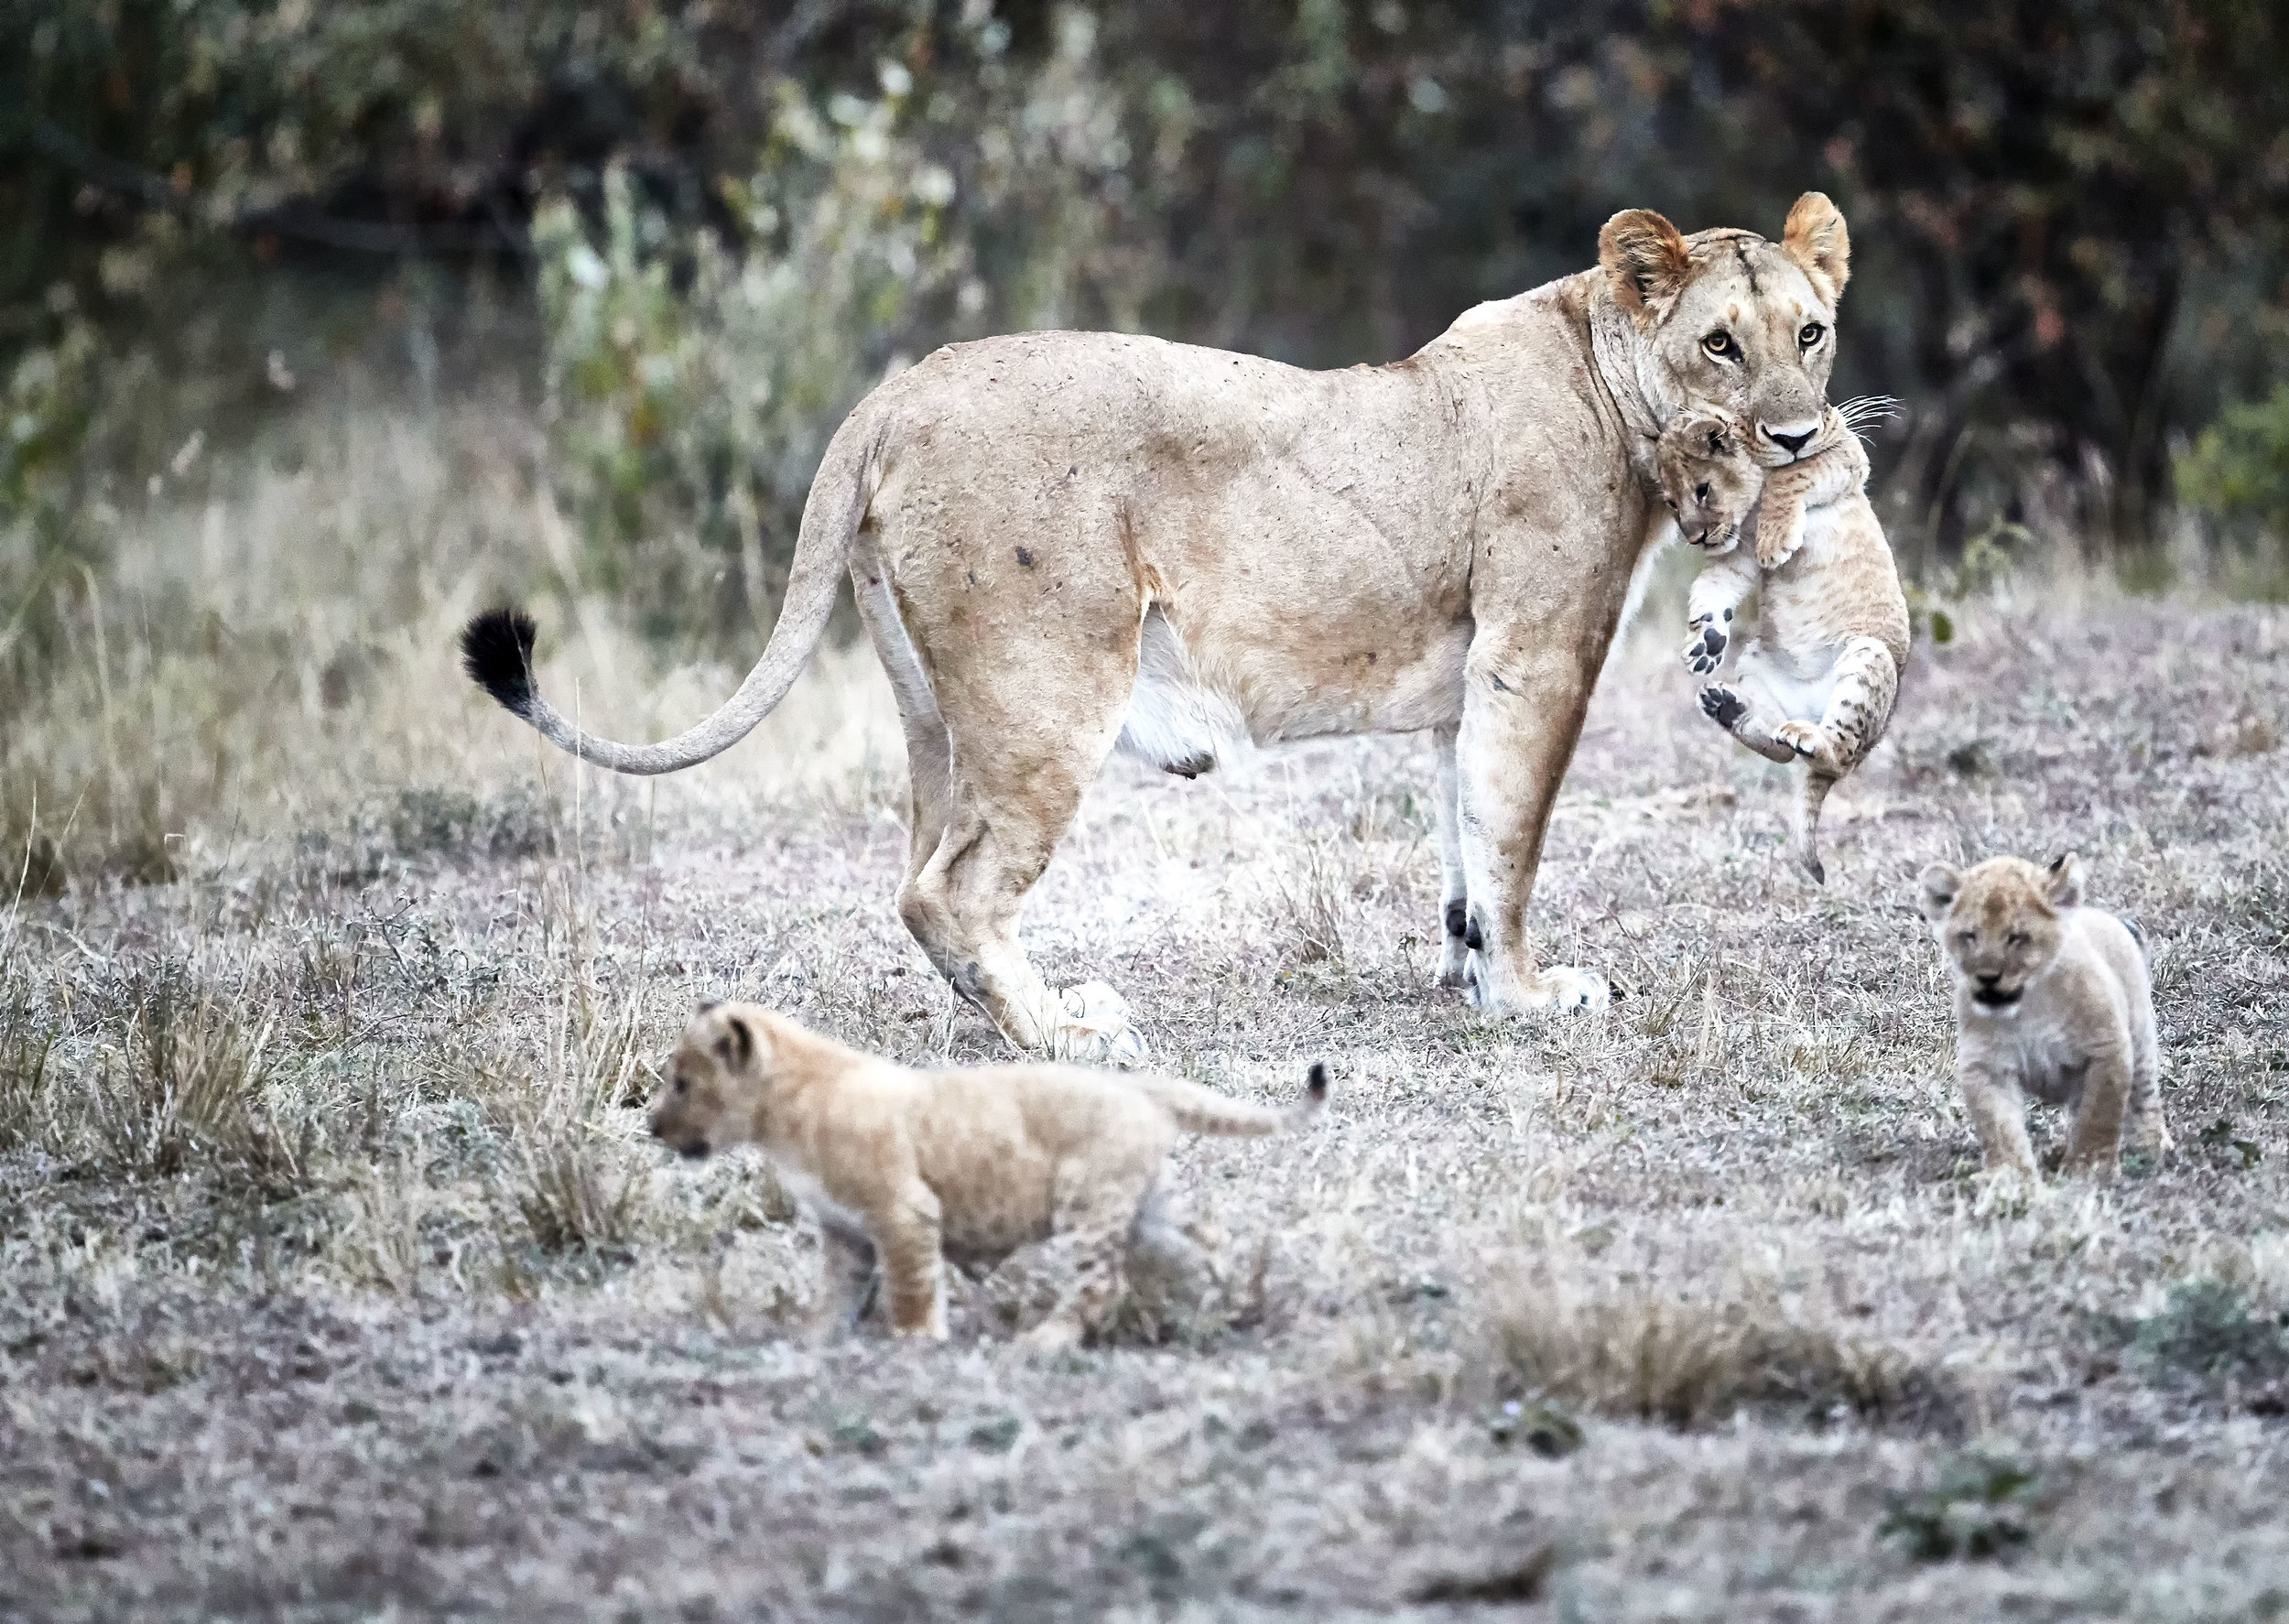 Female with Cubs in Tow Kenya